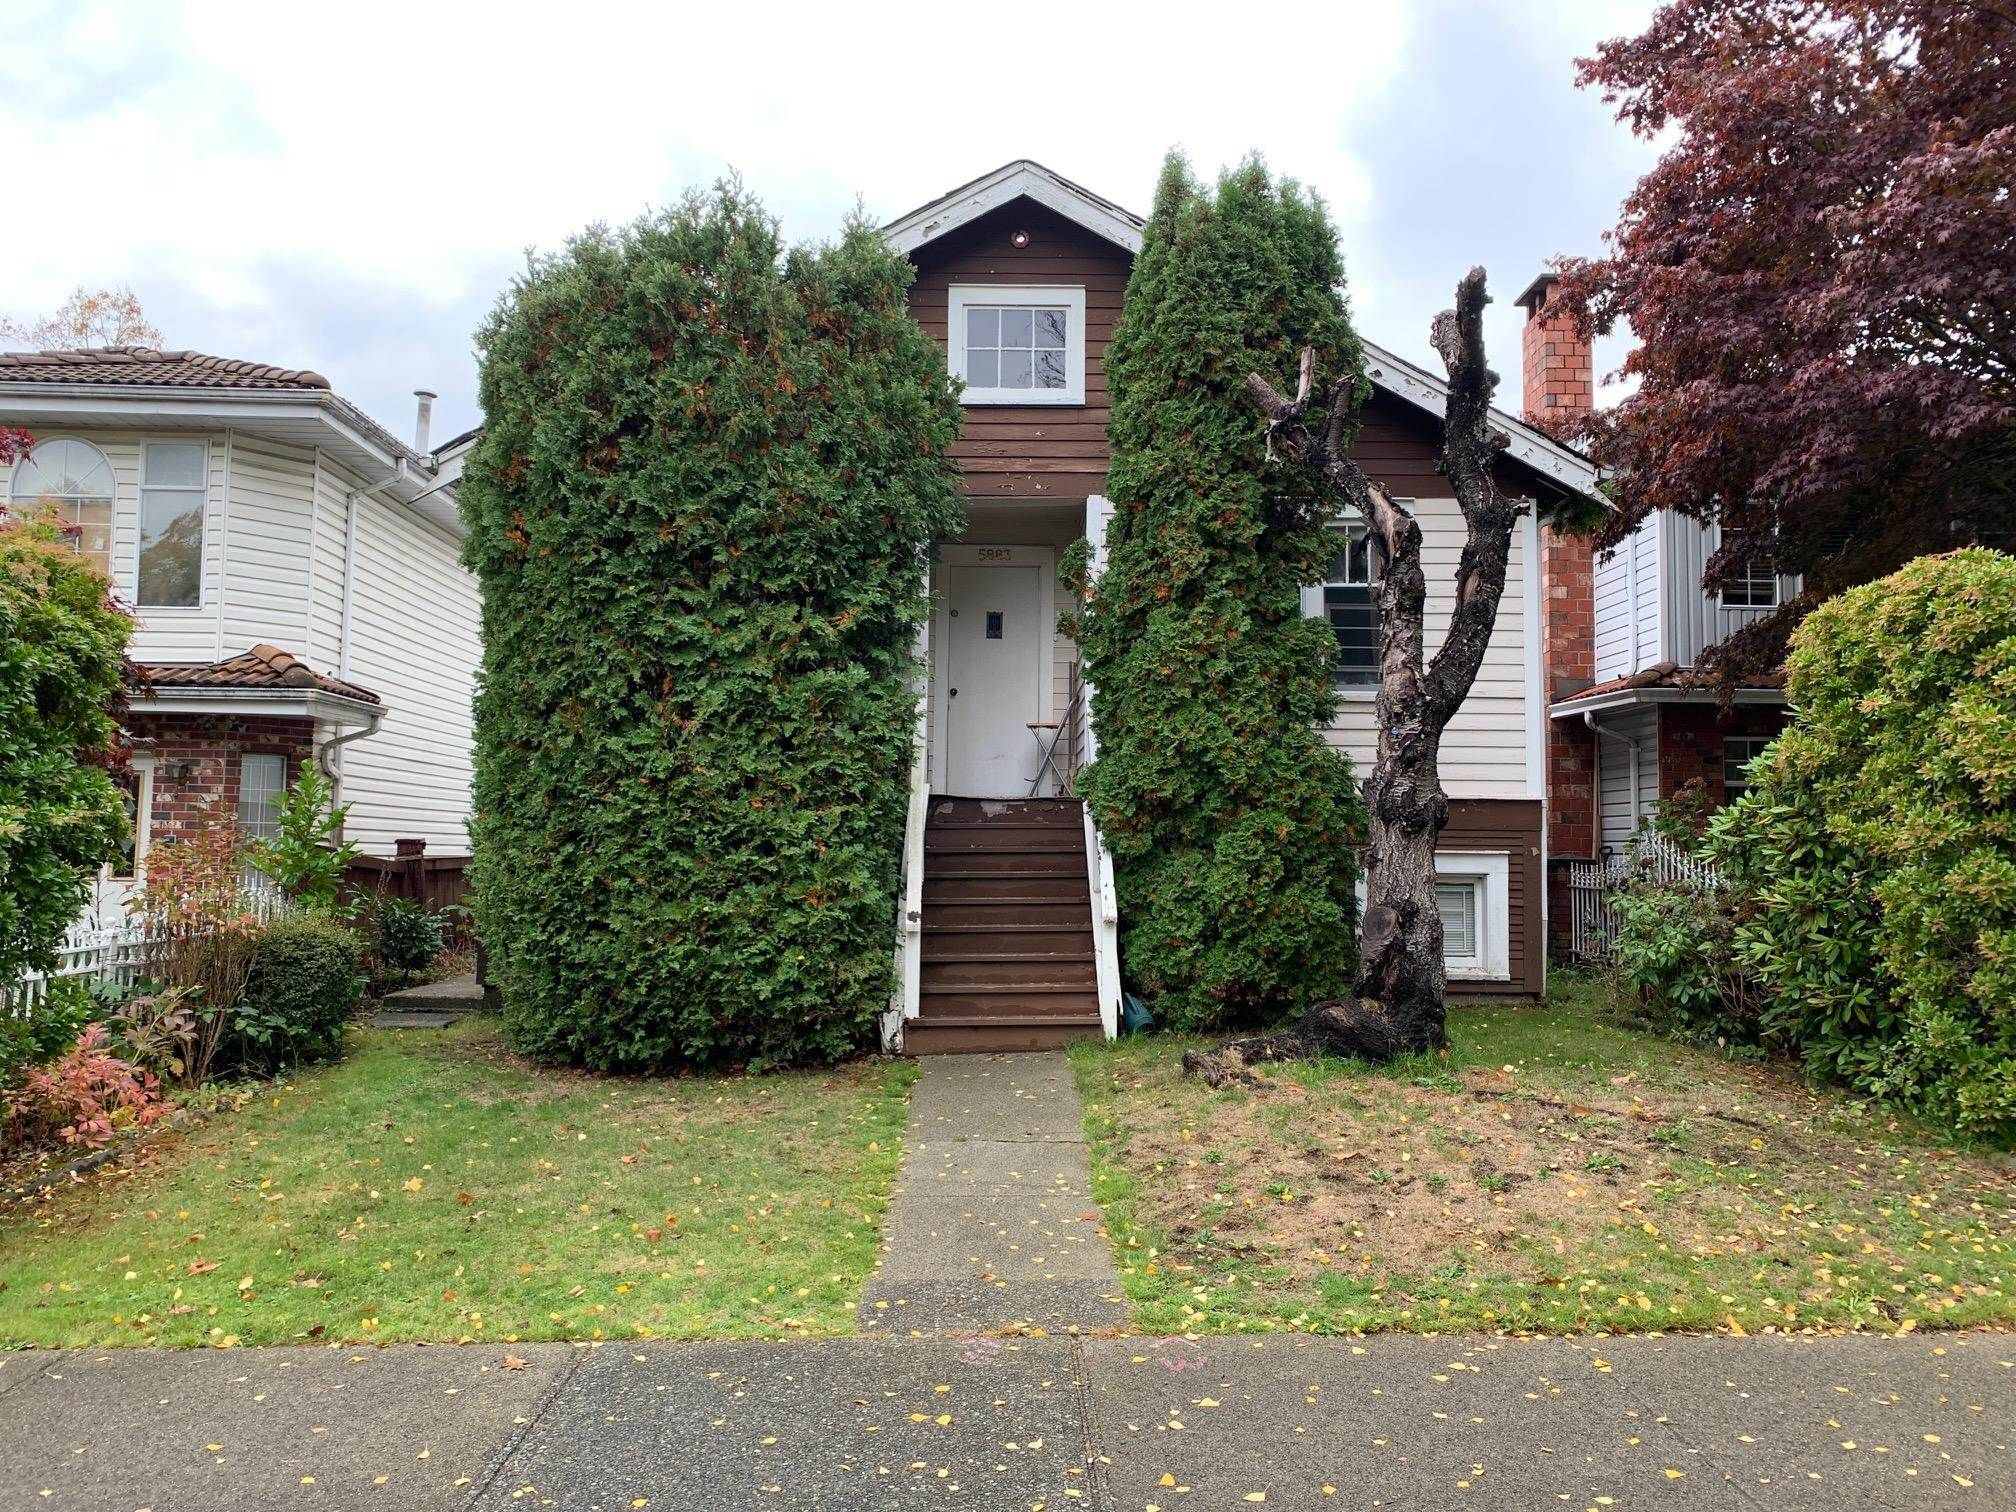 Main Photo: 5883 SOPHIA Street in Vancouver: Main House for sale (Vancouver East)  : MLS®# R2625371